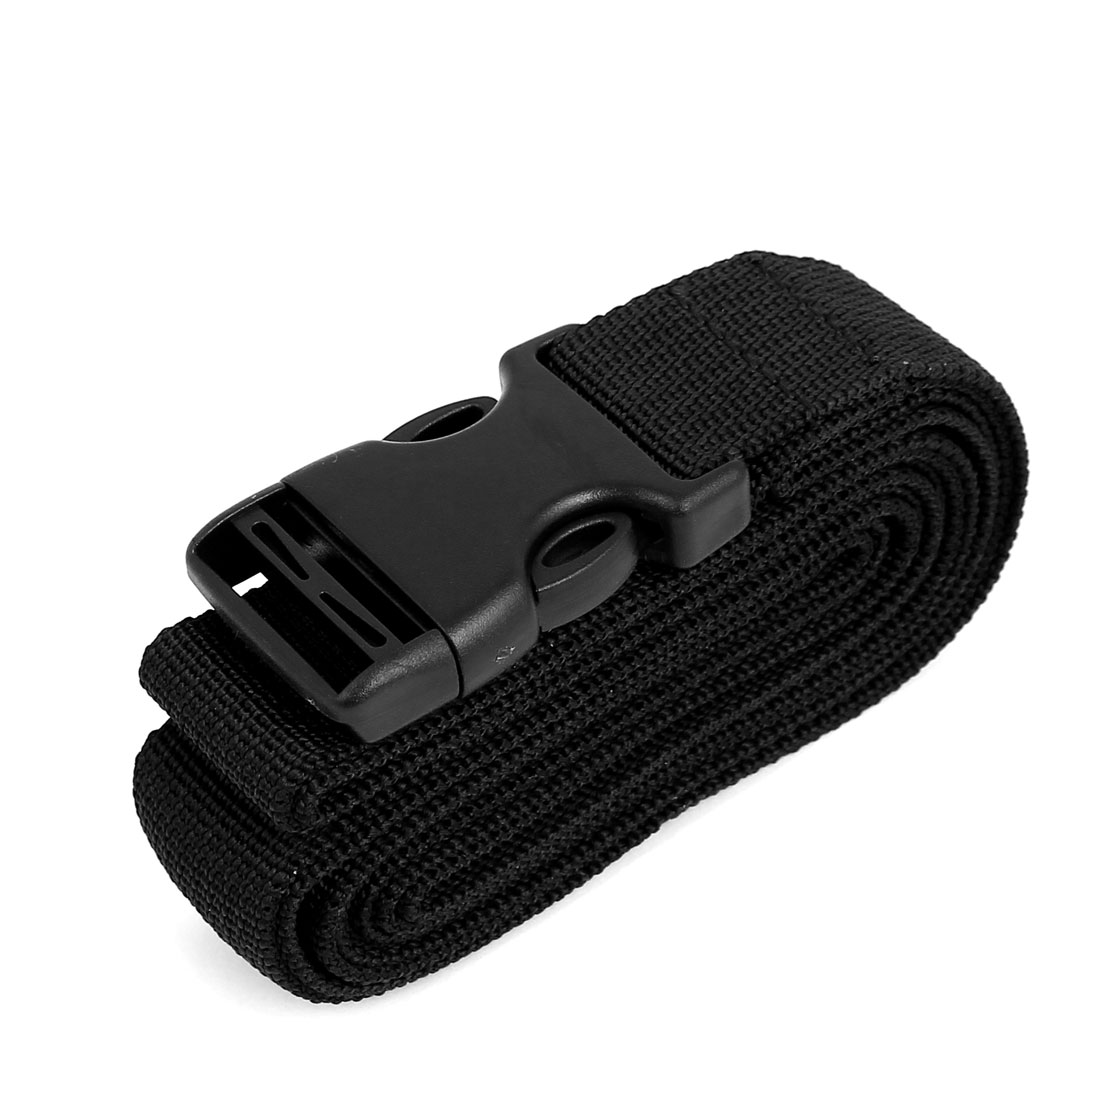 Side Release Buckle Luggage Suitcase Backpack Baggage Belt Strap Black 2M x 25mm